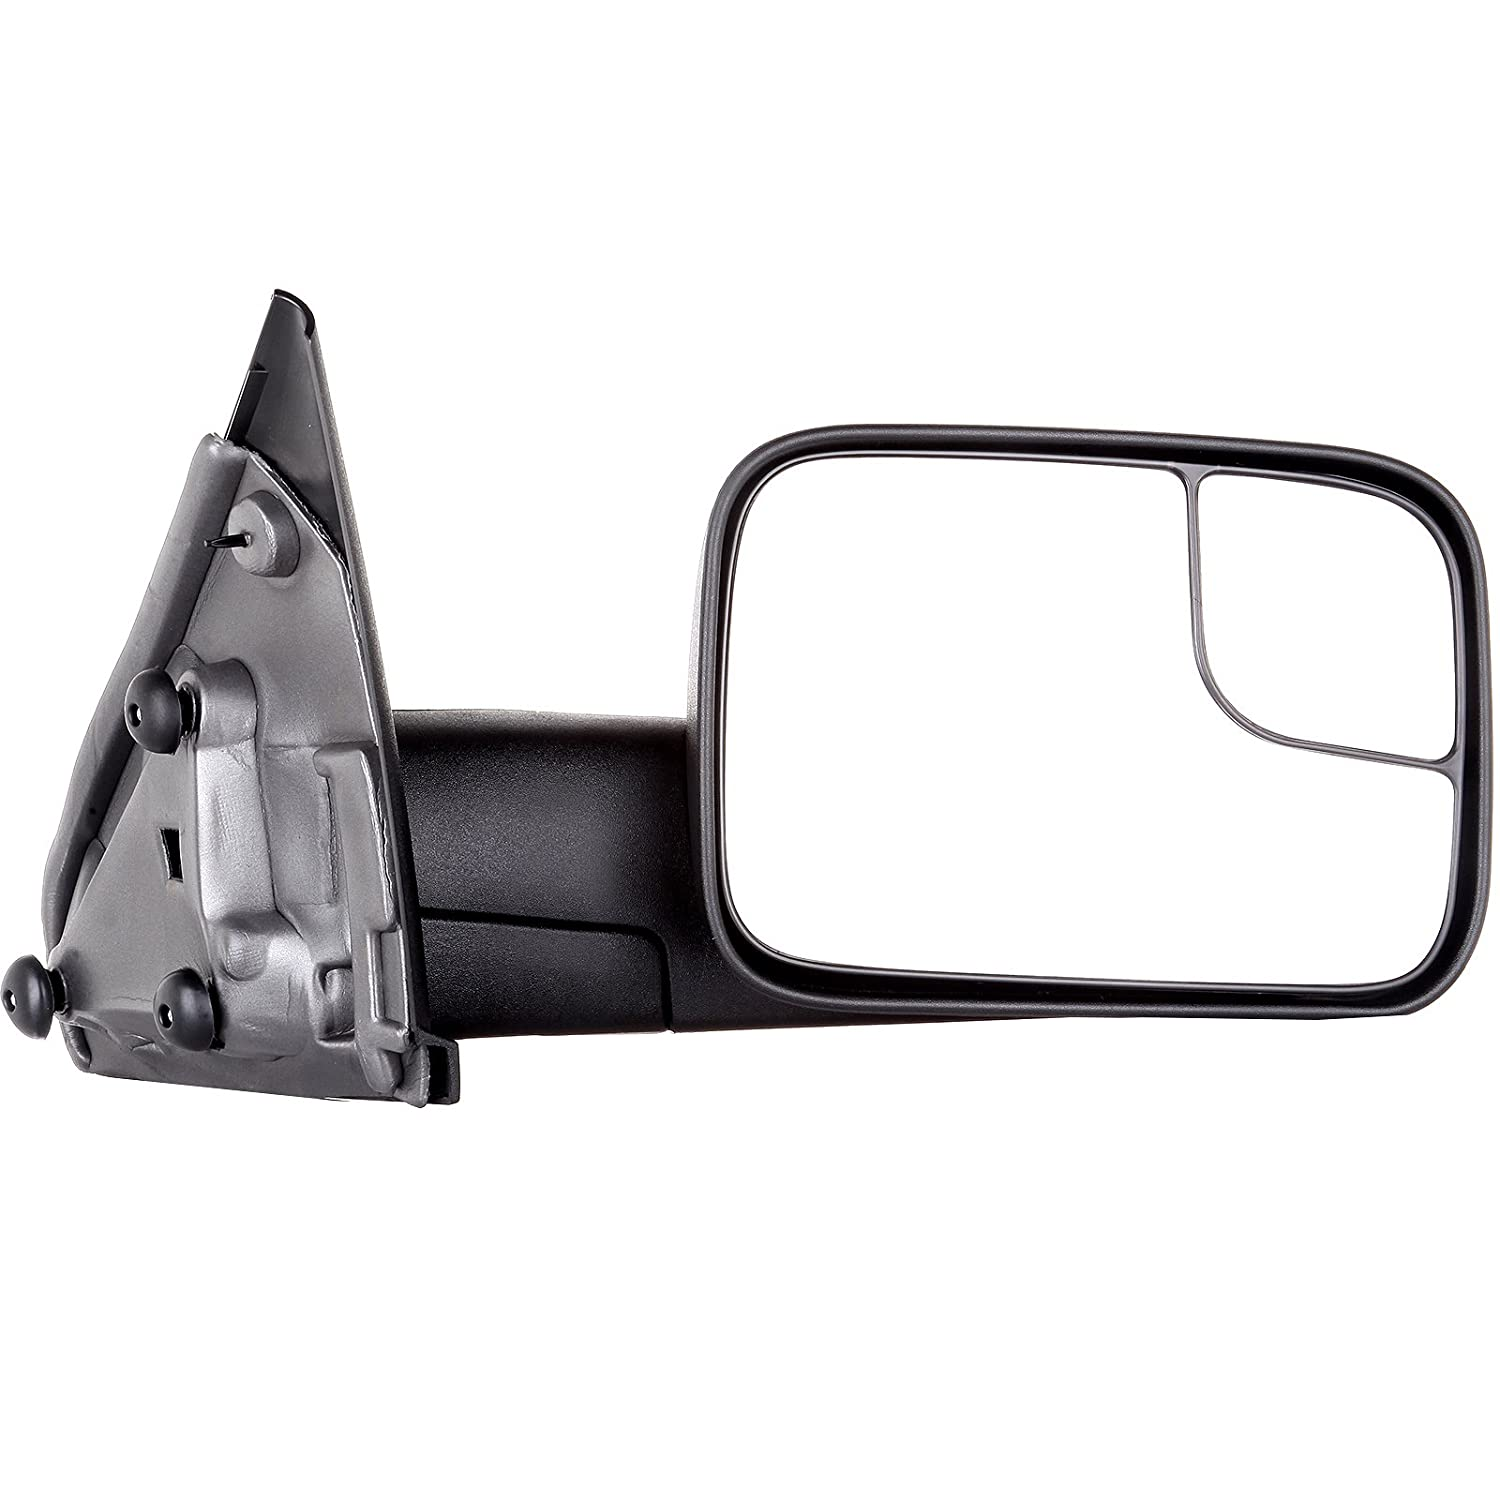 Scitoo Tow Side Mirror Pair Set For 02-08 Dodge Ram 1500 03-09 Ram 2500 3500 Full Size Pickup Truck Manual Towing Mirrors LH/&RH CH1320227 CH1321227